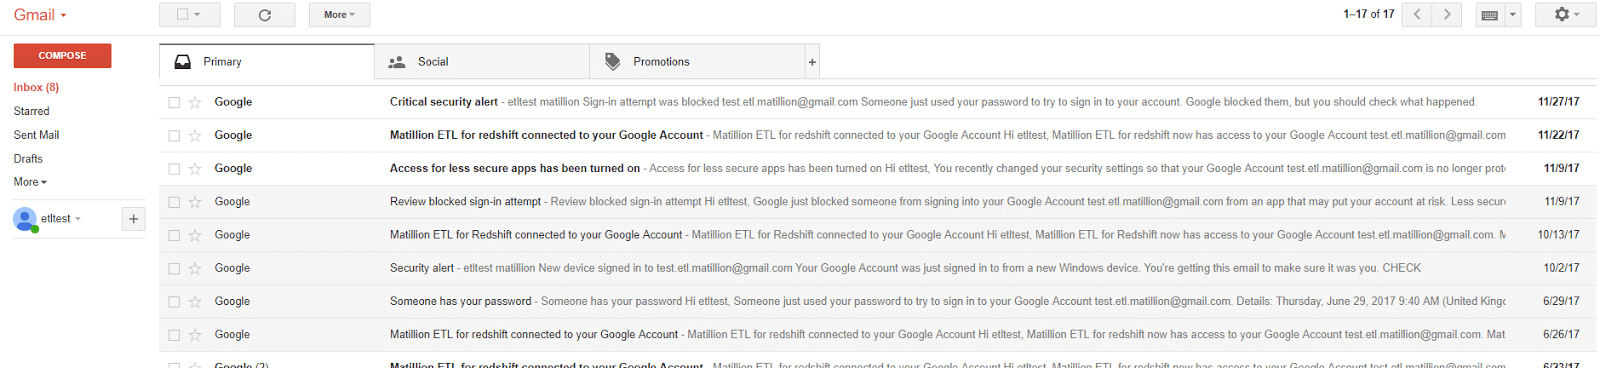 Using the Email Query component in Matillion ETL for Amazon Redshift - Gmail